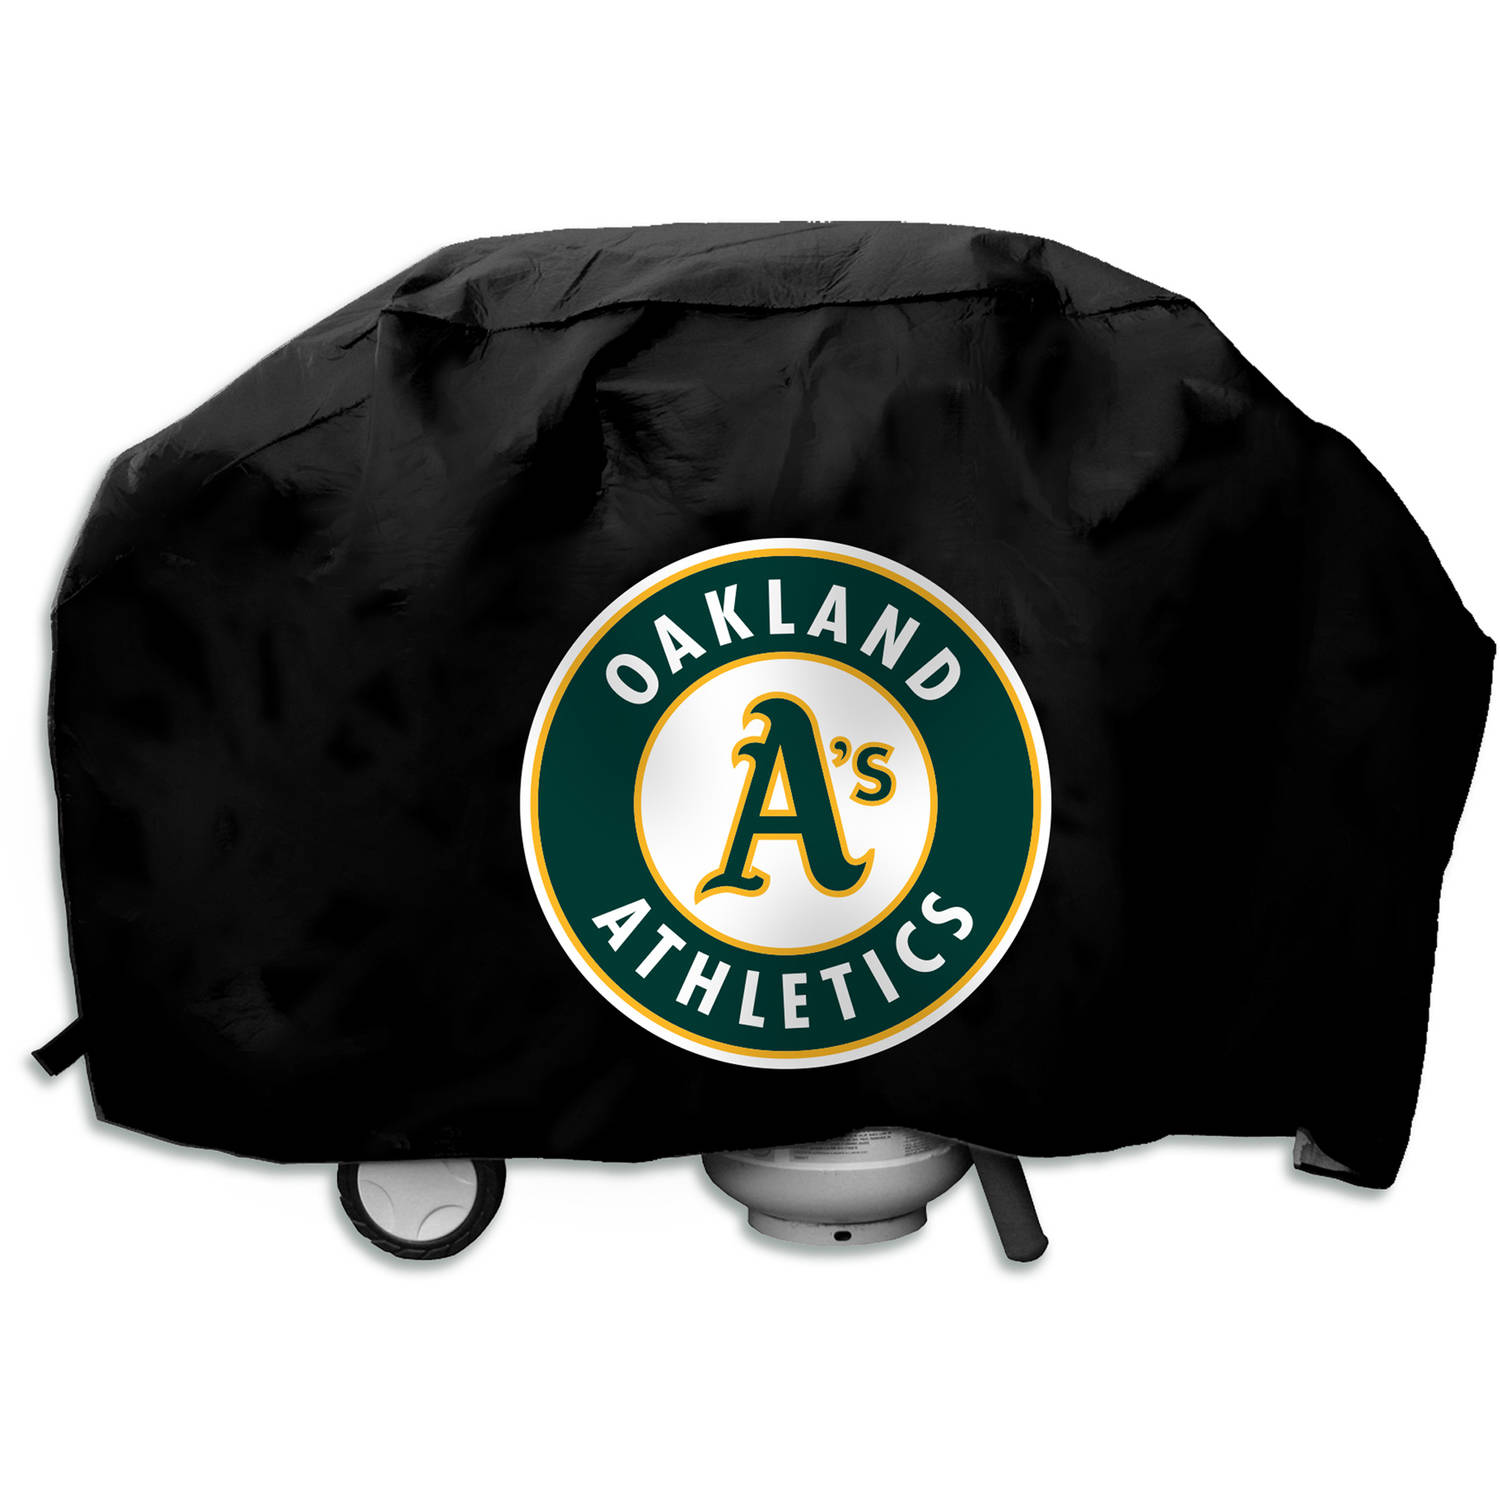 MLB Rico Industries Deluxe Grill Cover, Oakland A's